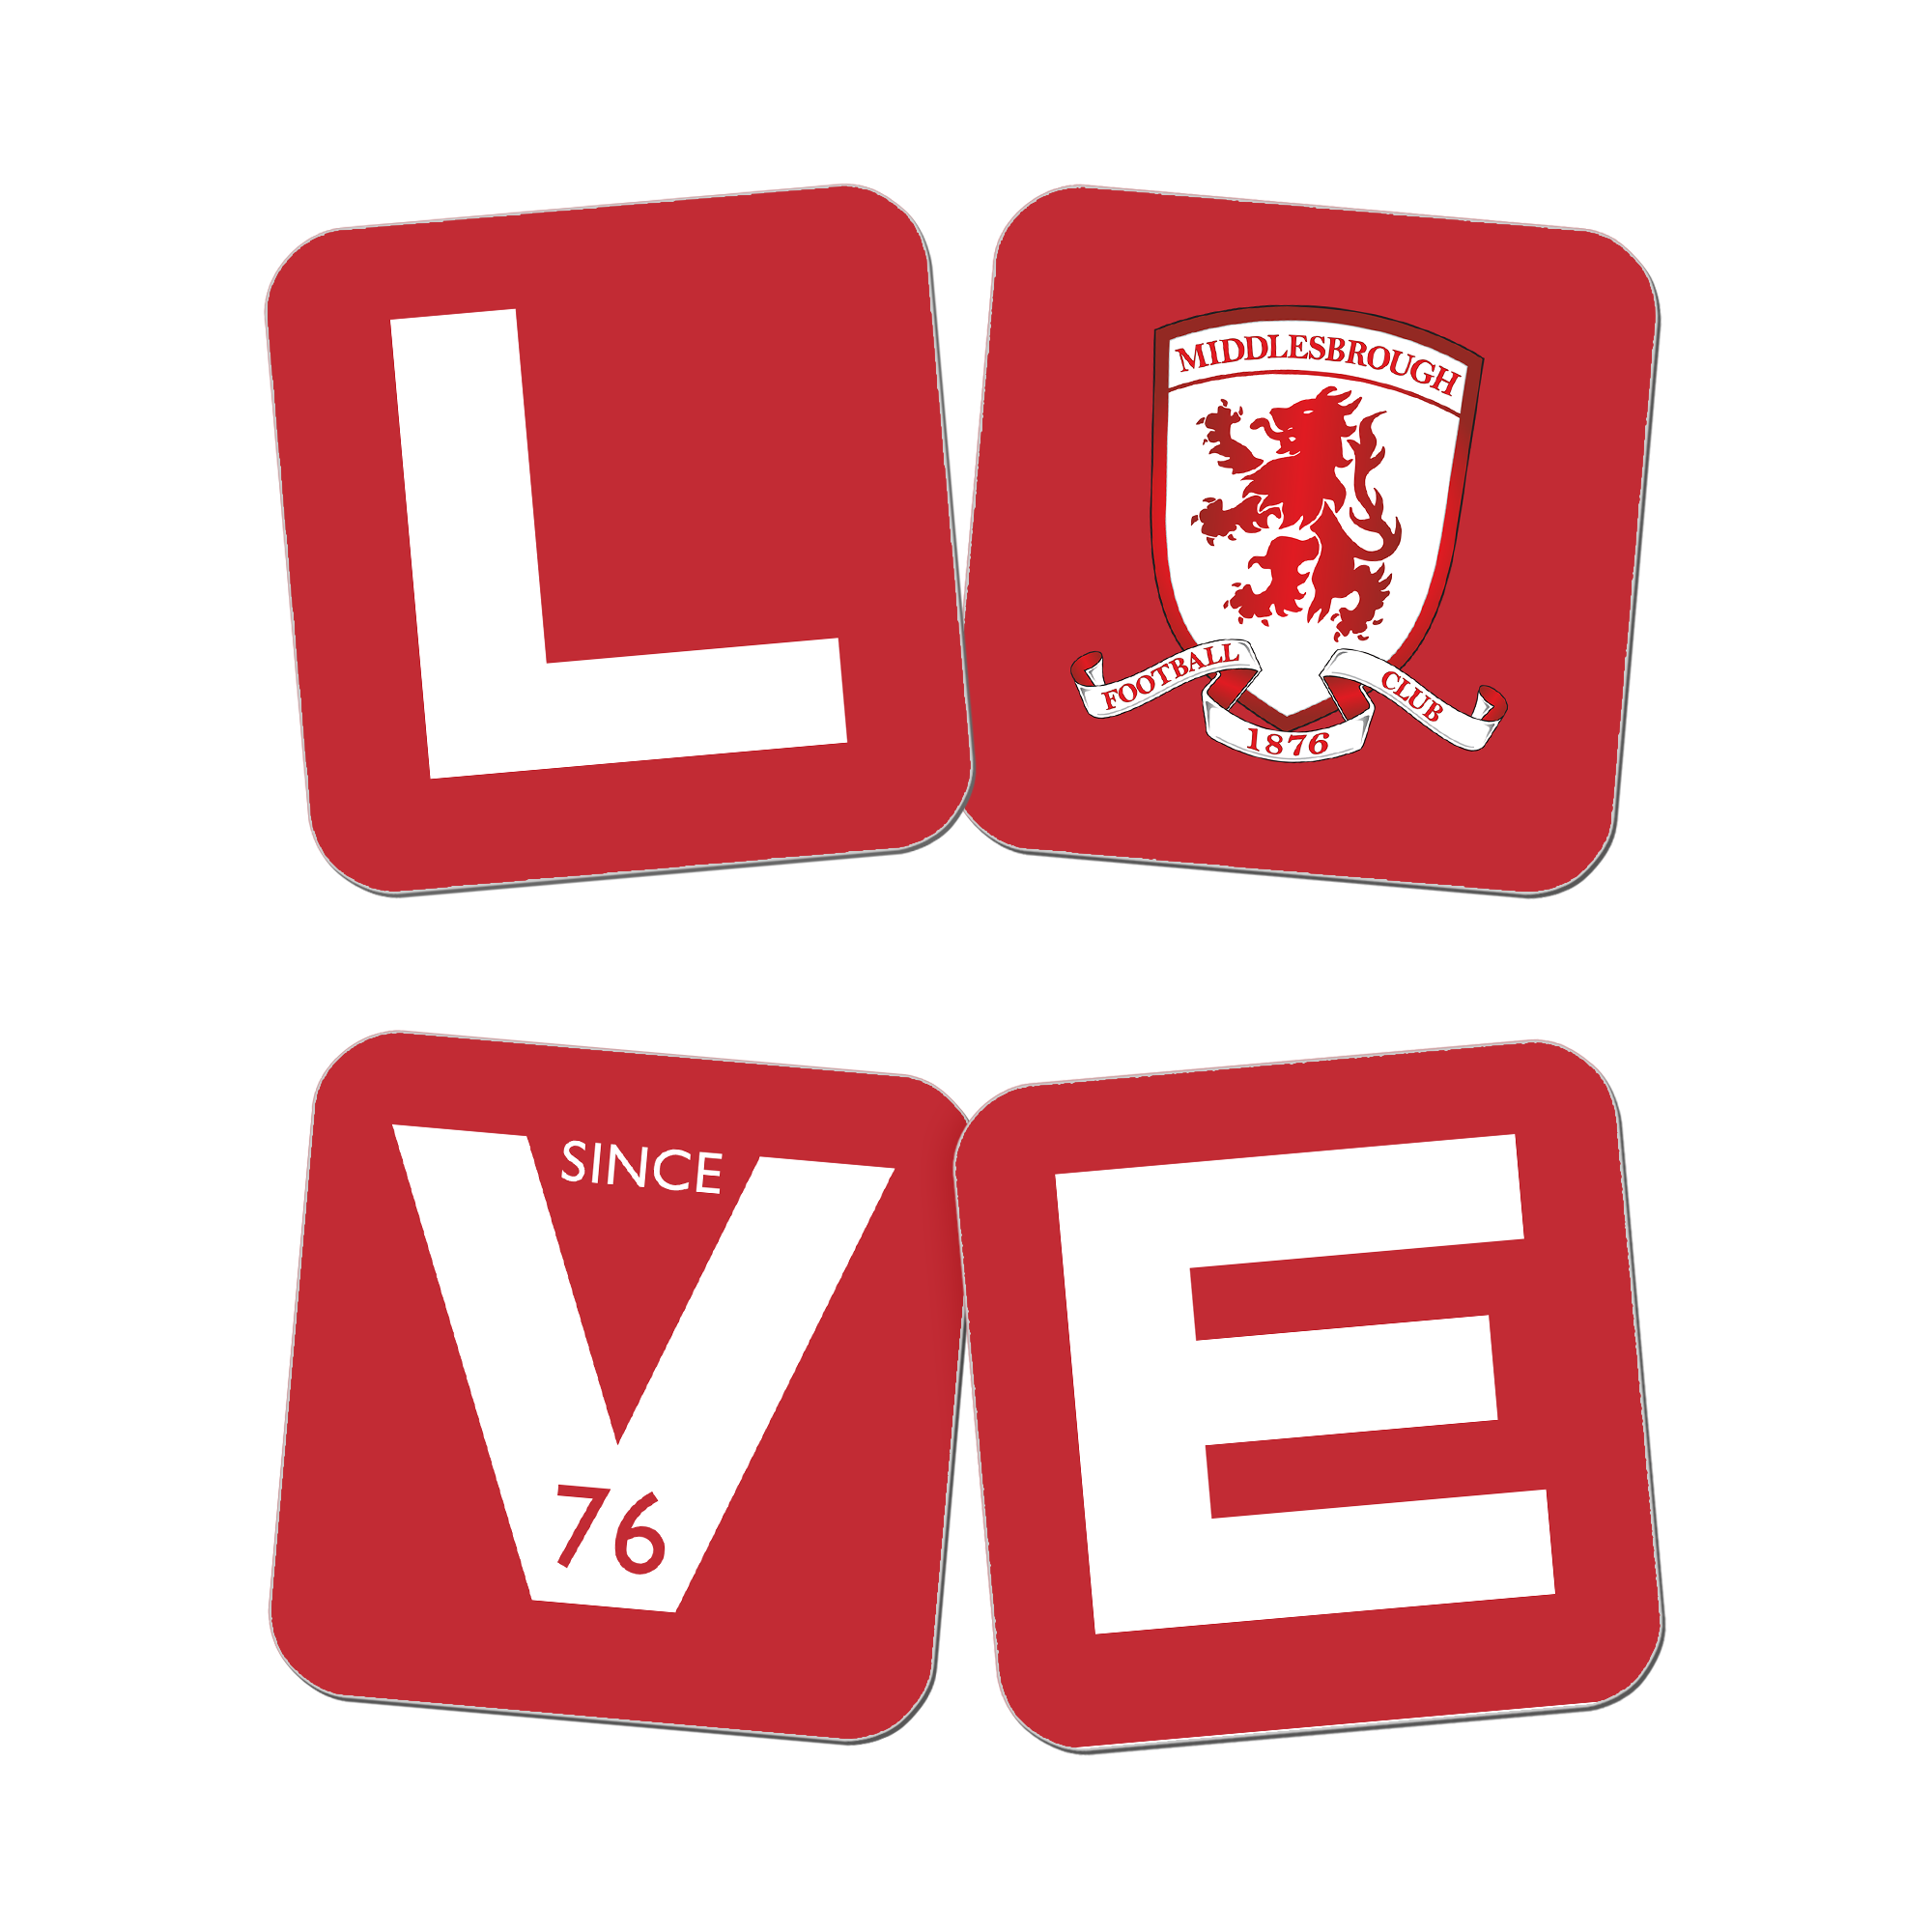 Middlesbrough Love Coasters (x4)